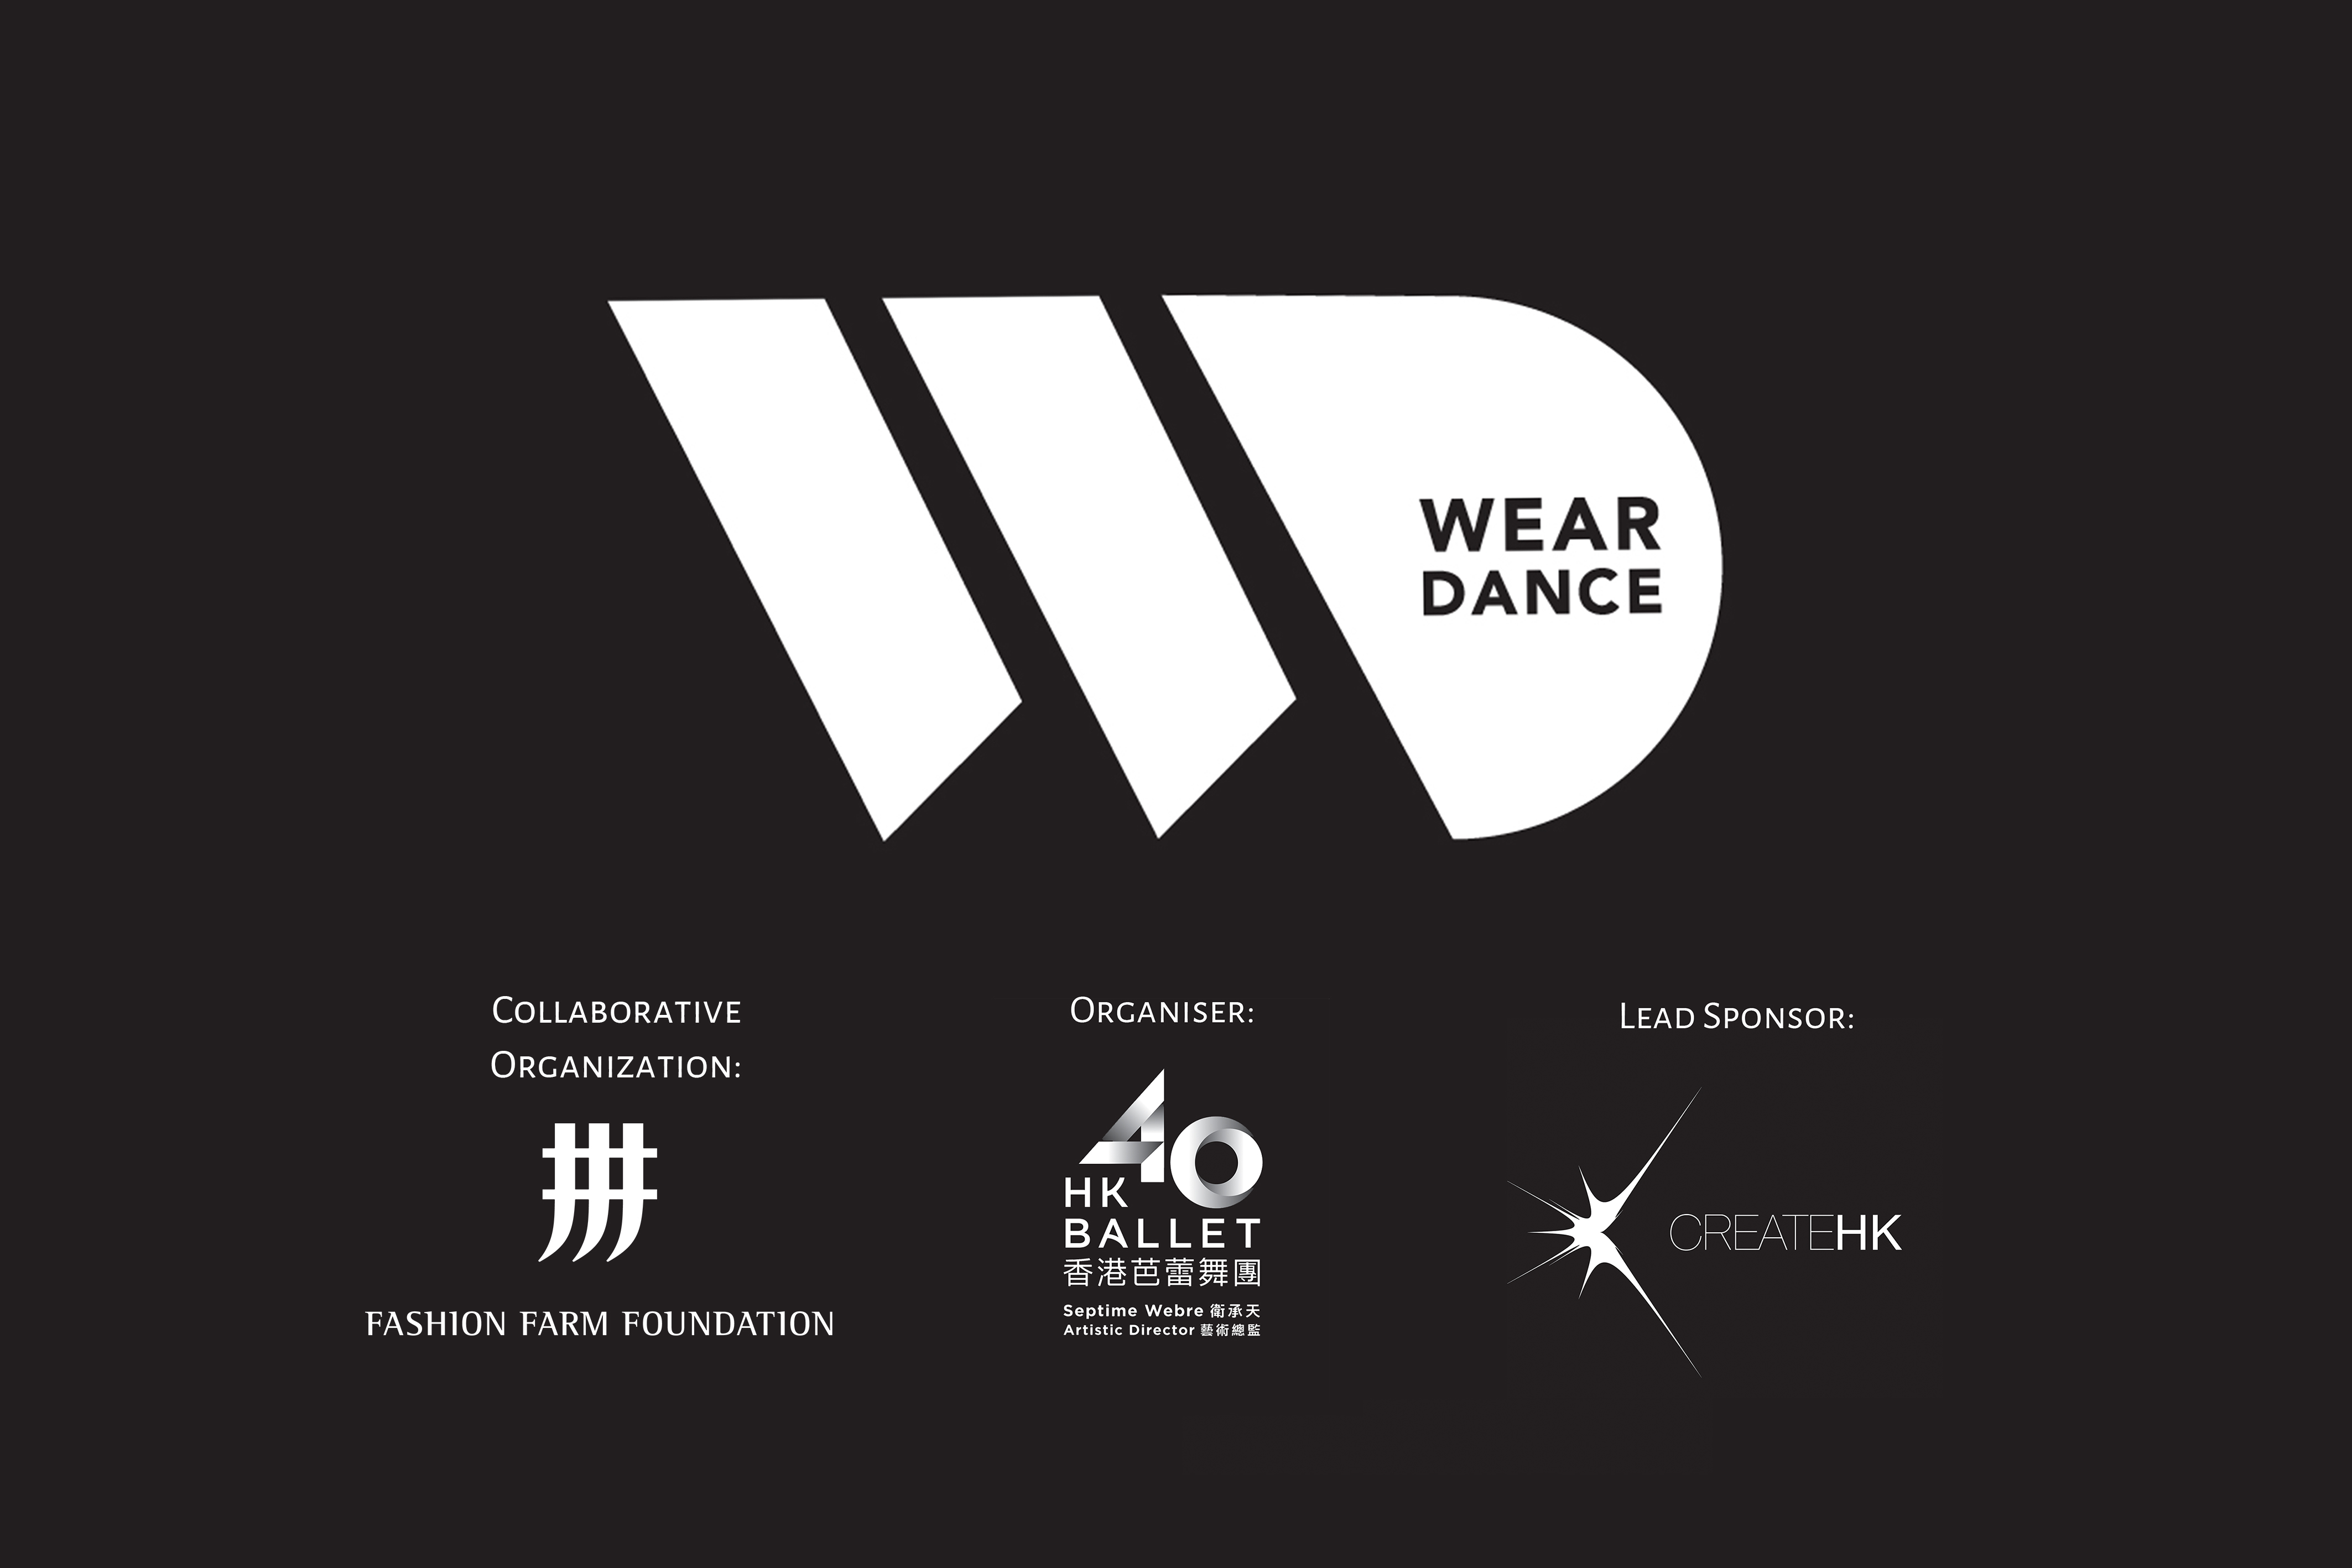 Supporting Event - WearDance